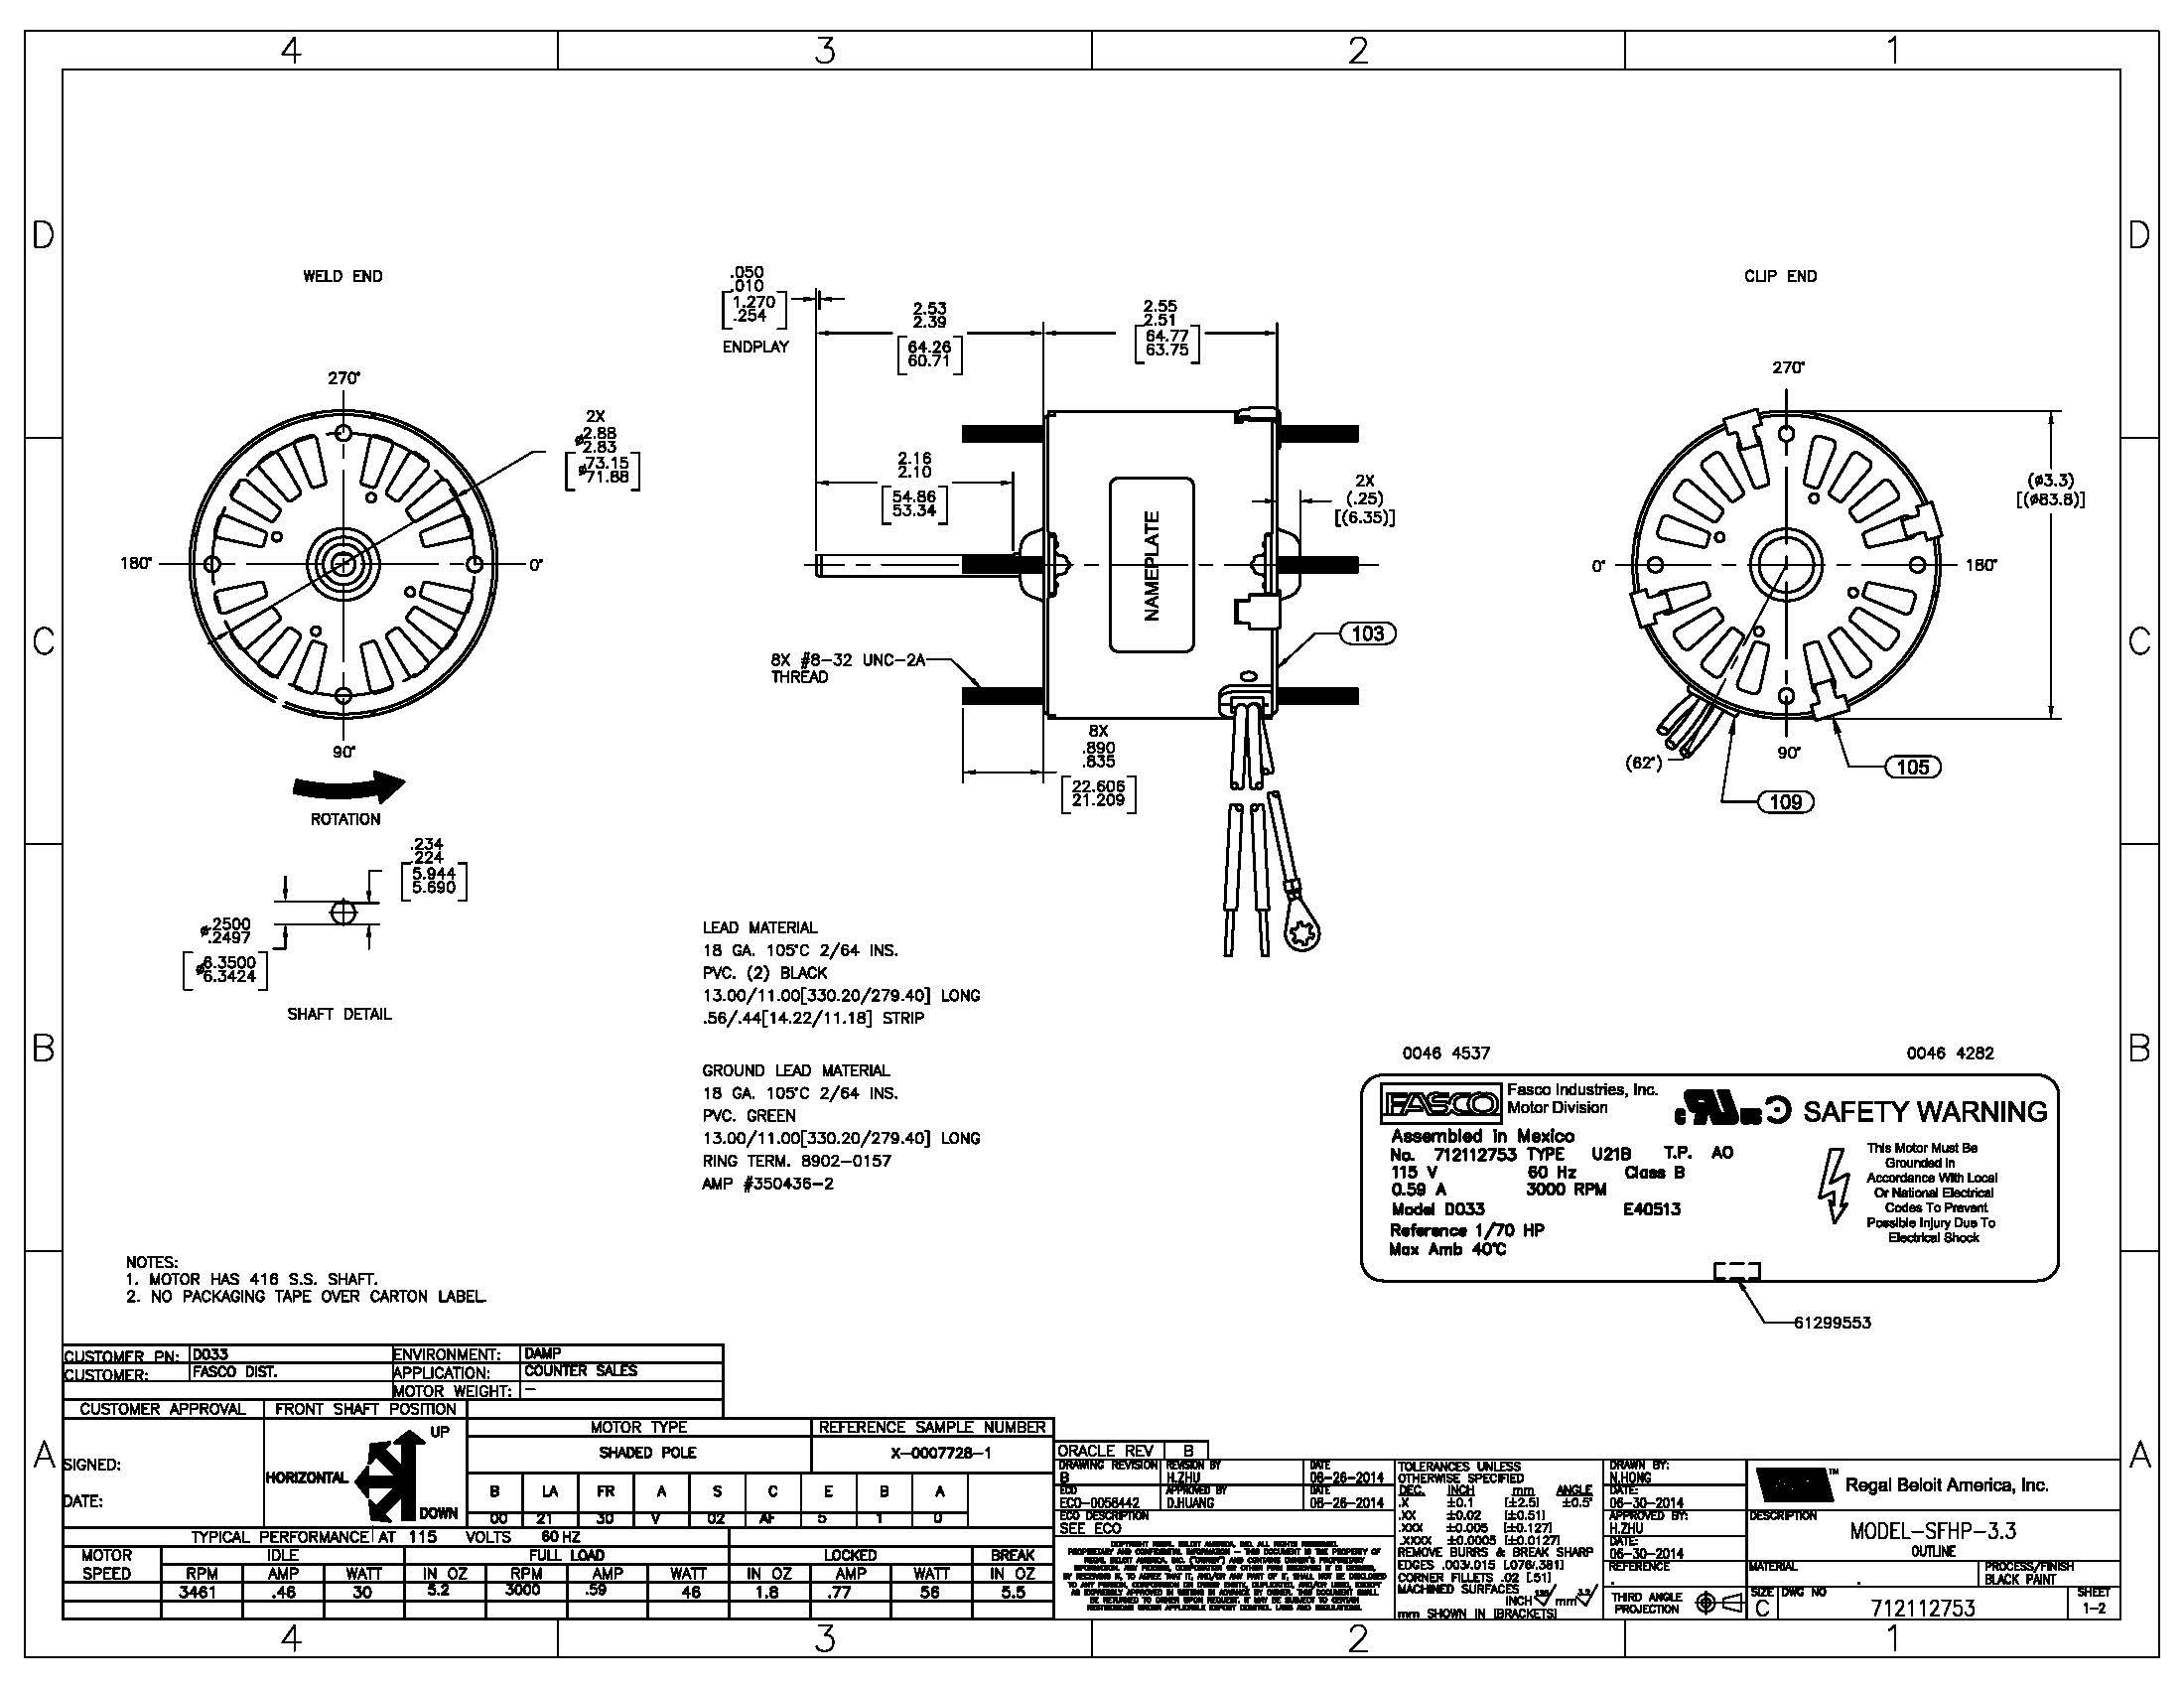 Capacitor Start Motor Wiring Diagram Seivo Image Ac Explained Baldor Electric Diagrams Web Search Engine Example Furnace 5 Wire